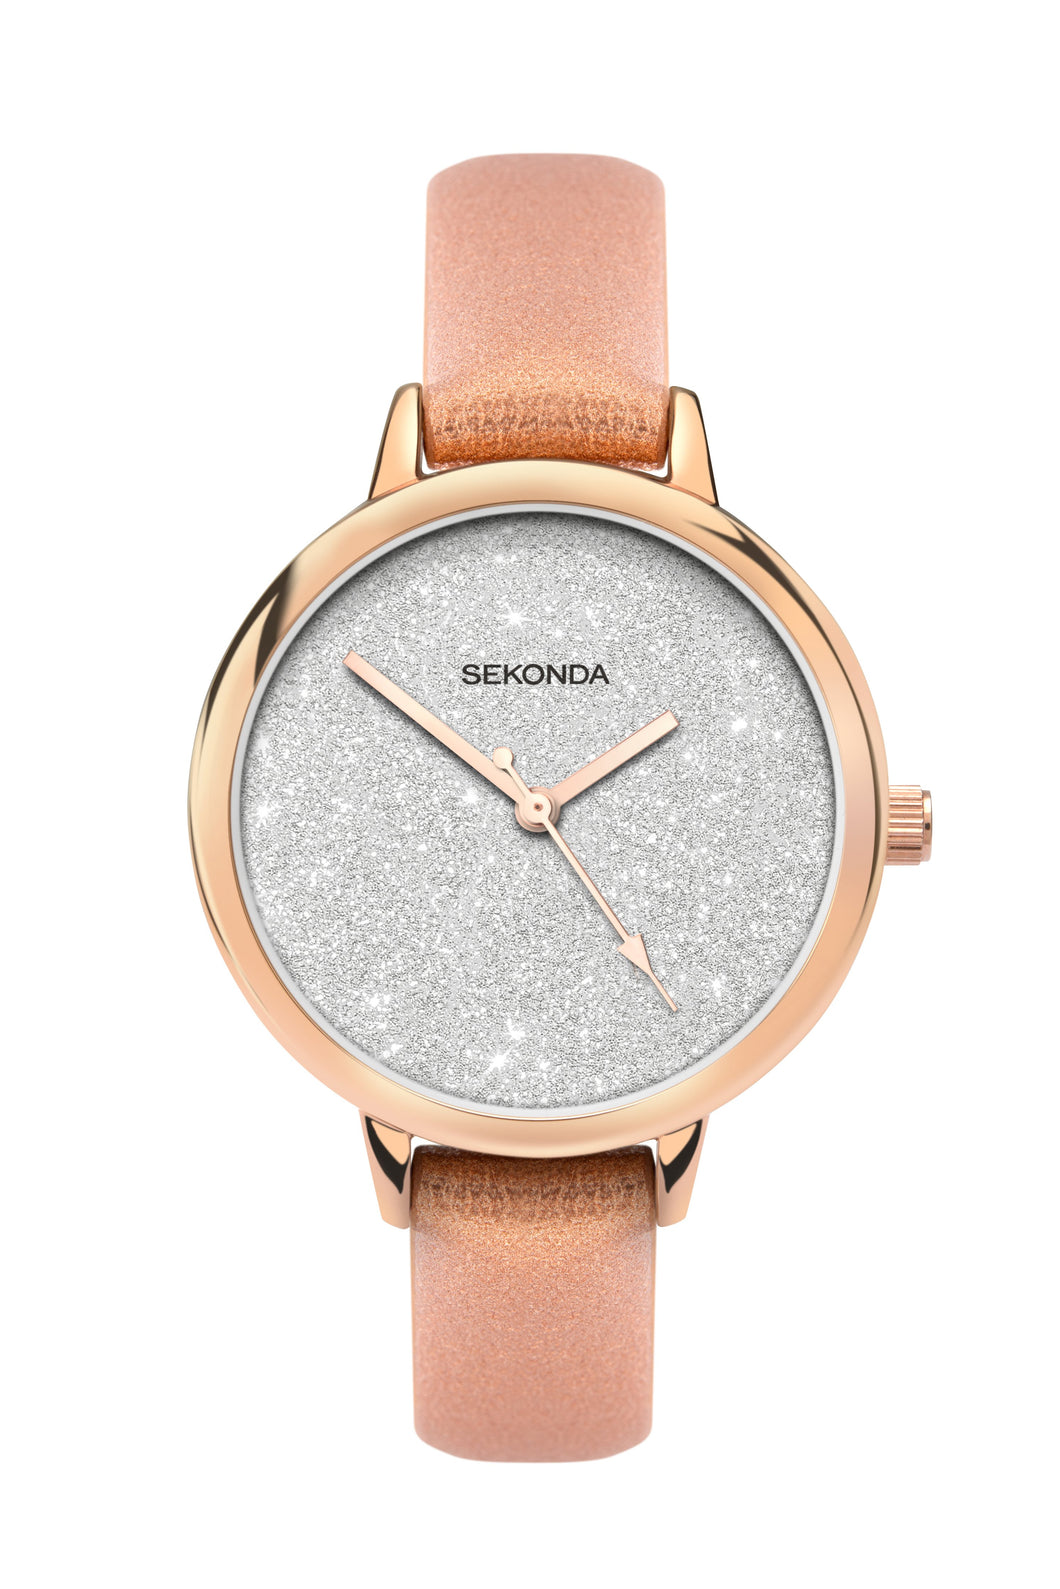 Sekonda Editions Women's Glitter Dial Rose Gold Strap Watch